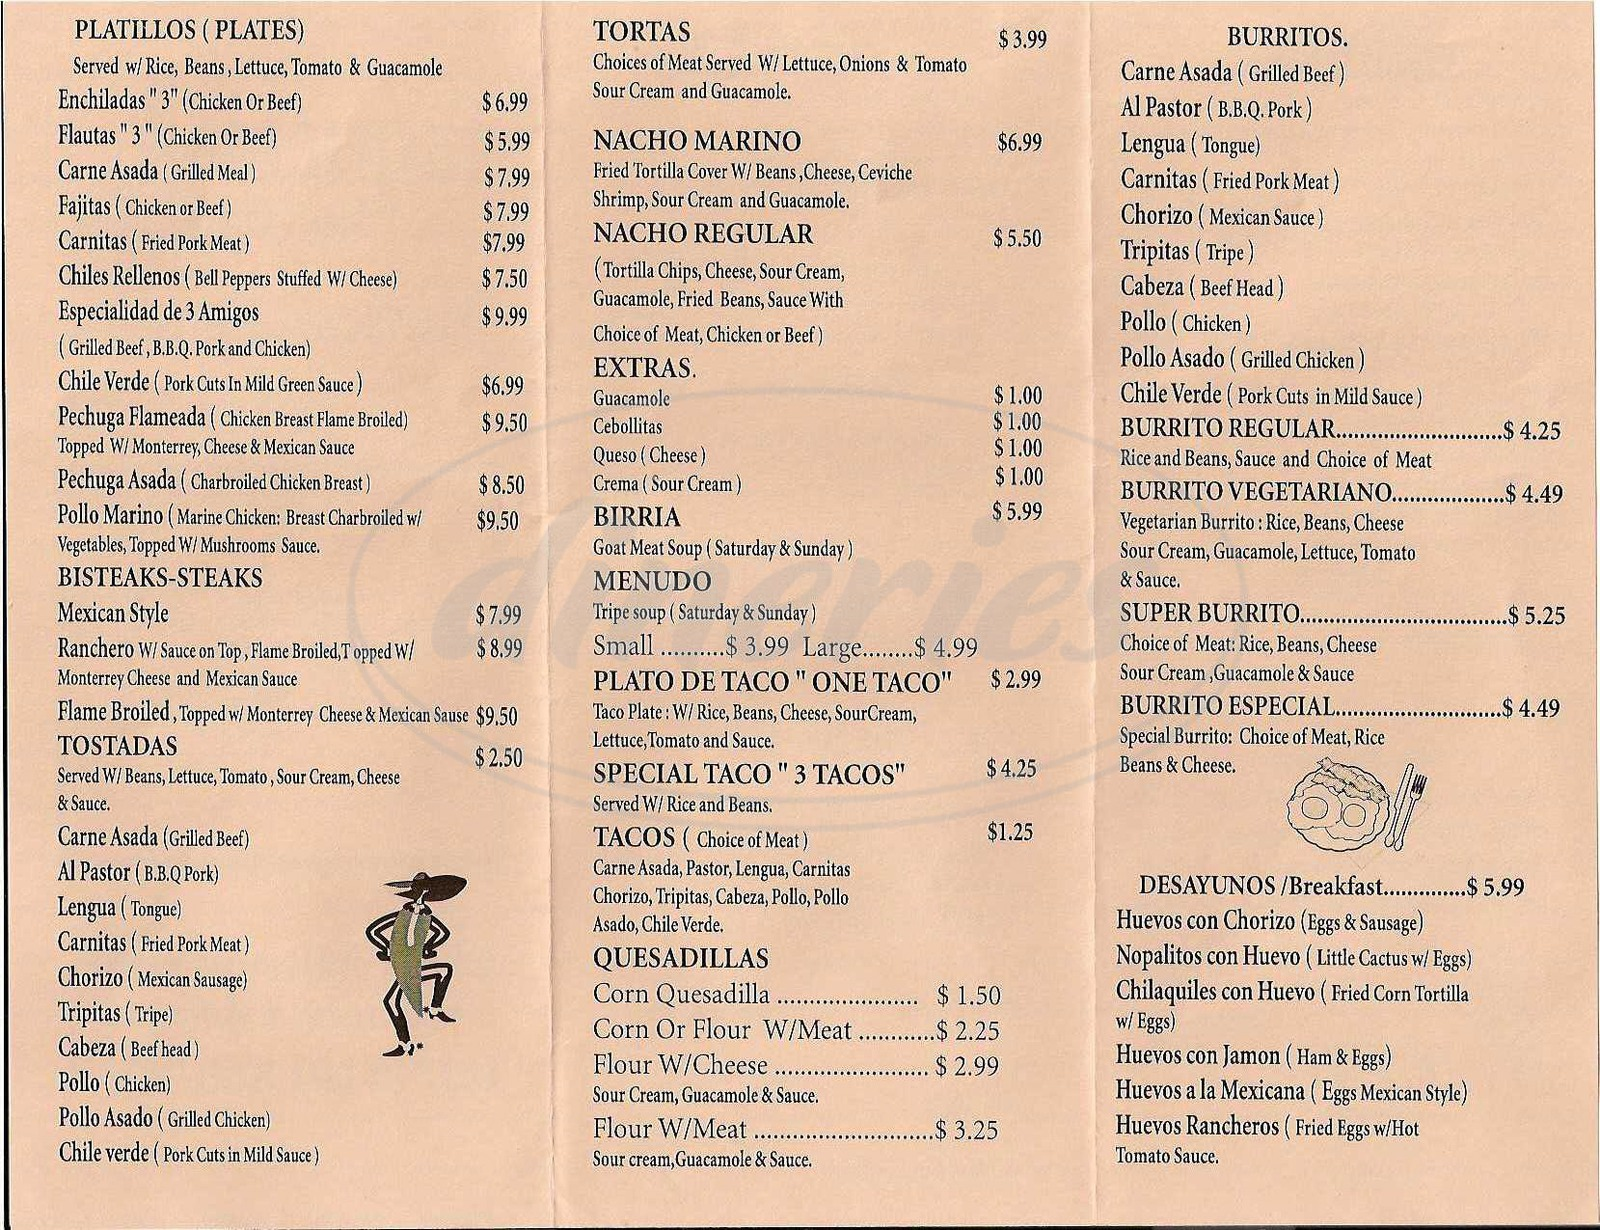 menu for Taqueria Mar y Terria